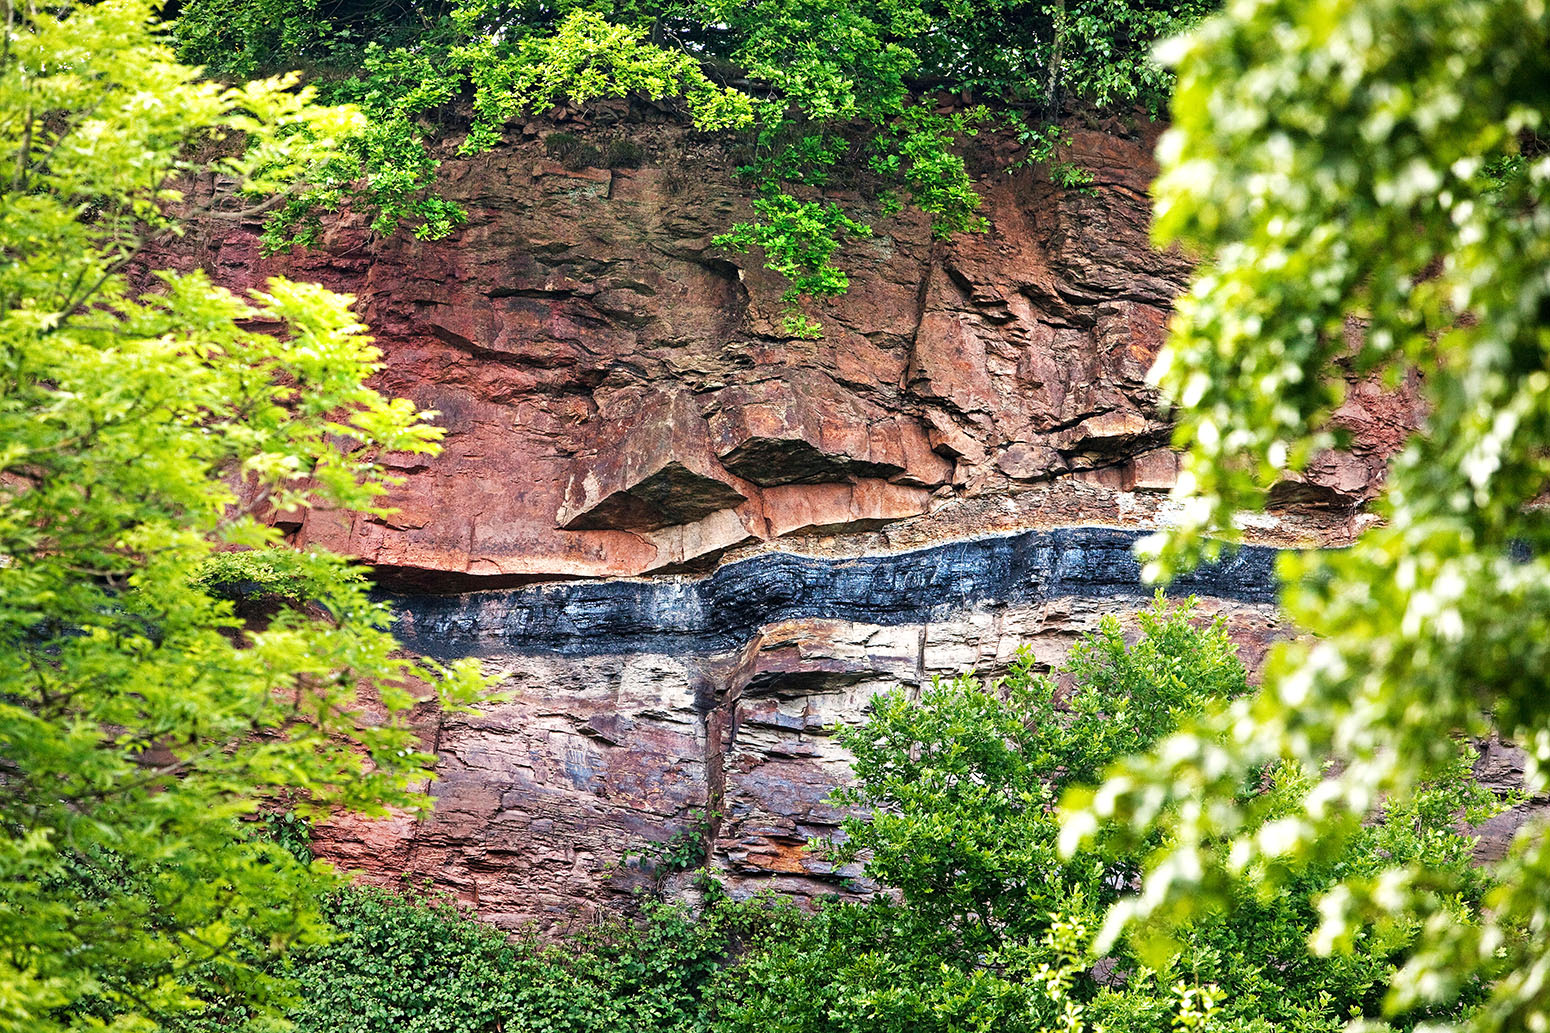 Geological outcrop with overground coal seam, Witten, Germany. Credit: imageBROKER / Alamy Stock Photo. EX3DYE